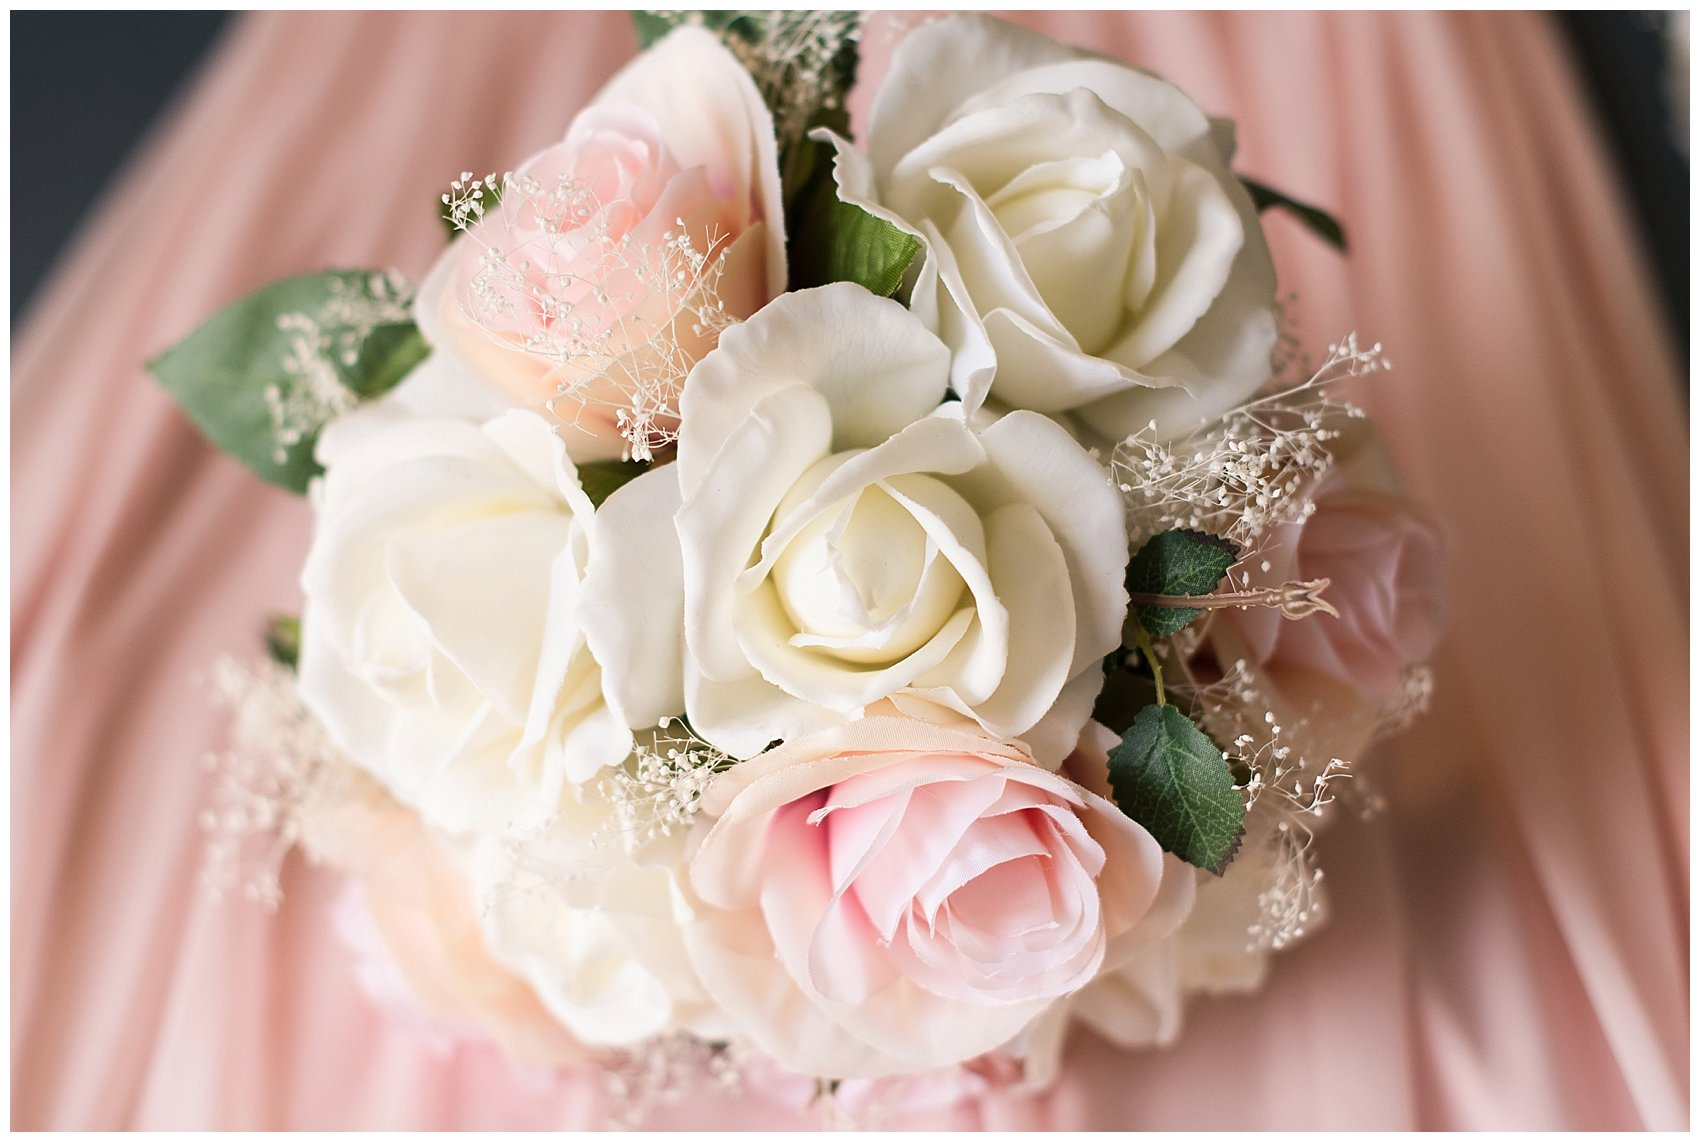 Blush Pink Summer Virginia Beach Wedding Regent University Founders Inn Bride and Groom Wedding Photographers_6020